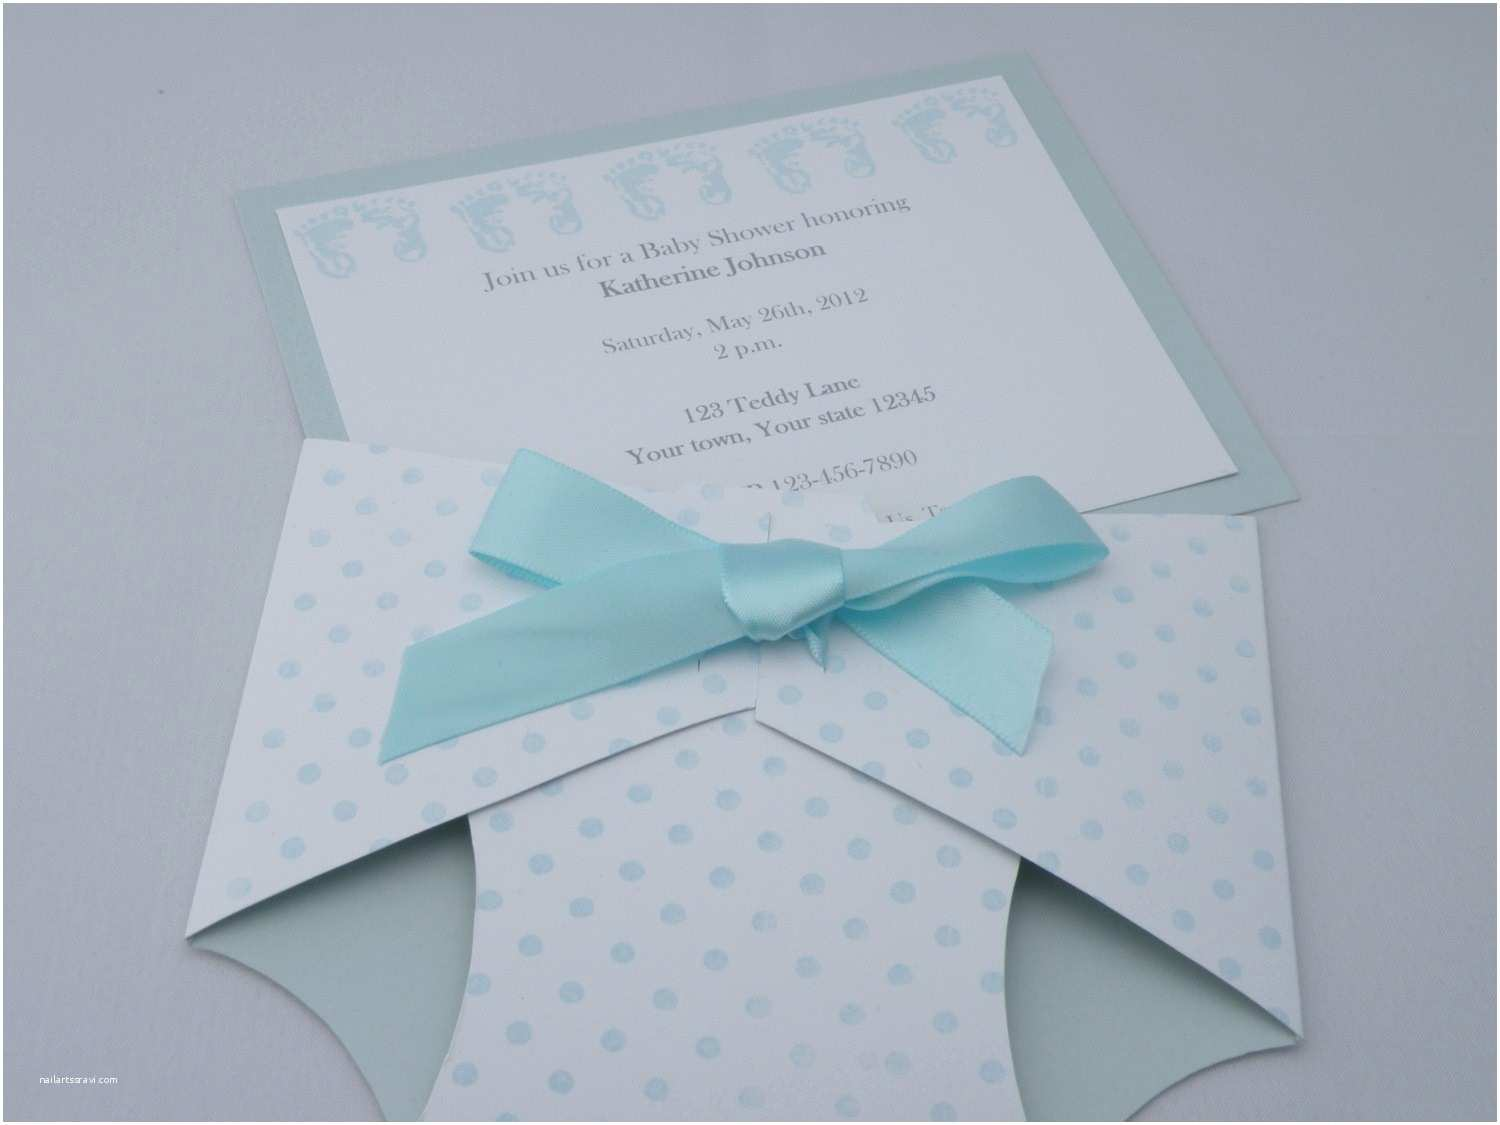 Diaper Shaped Baby Shower Invitations Invitation for Baby Shower Glamorous Diaper Shaped Baby